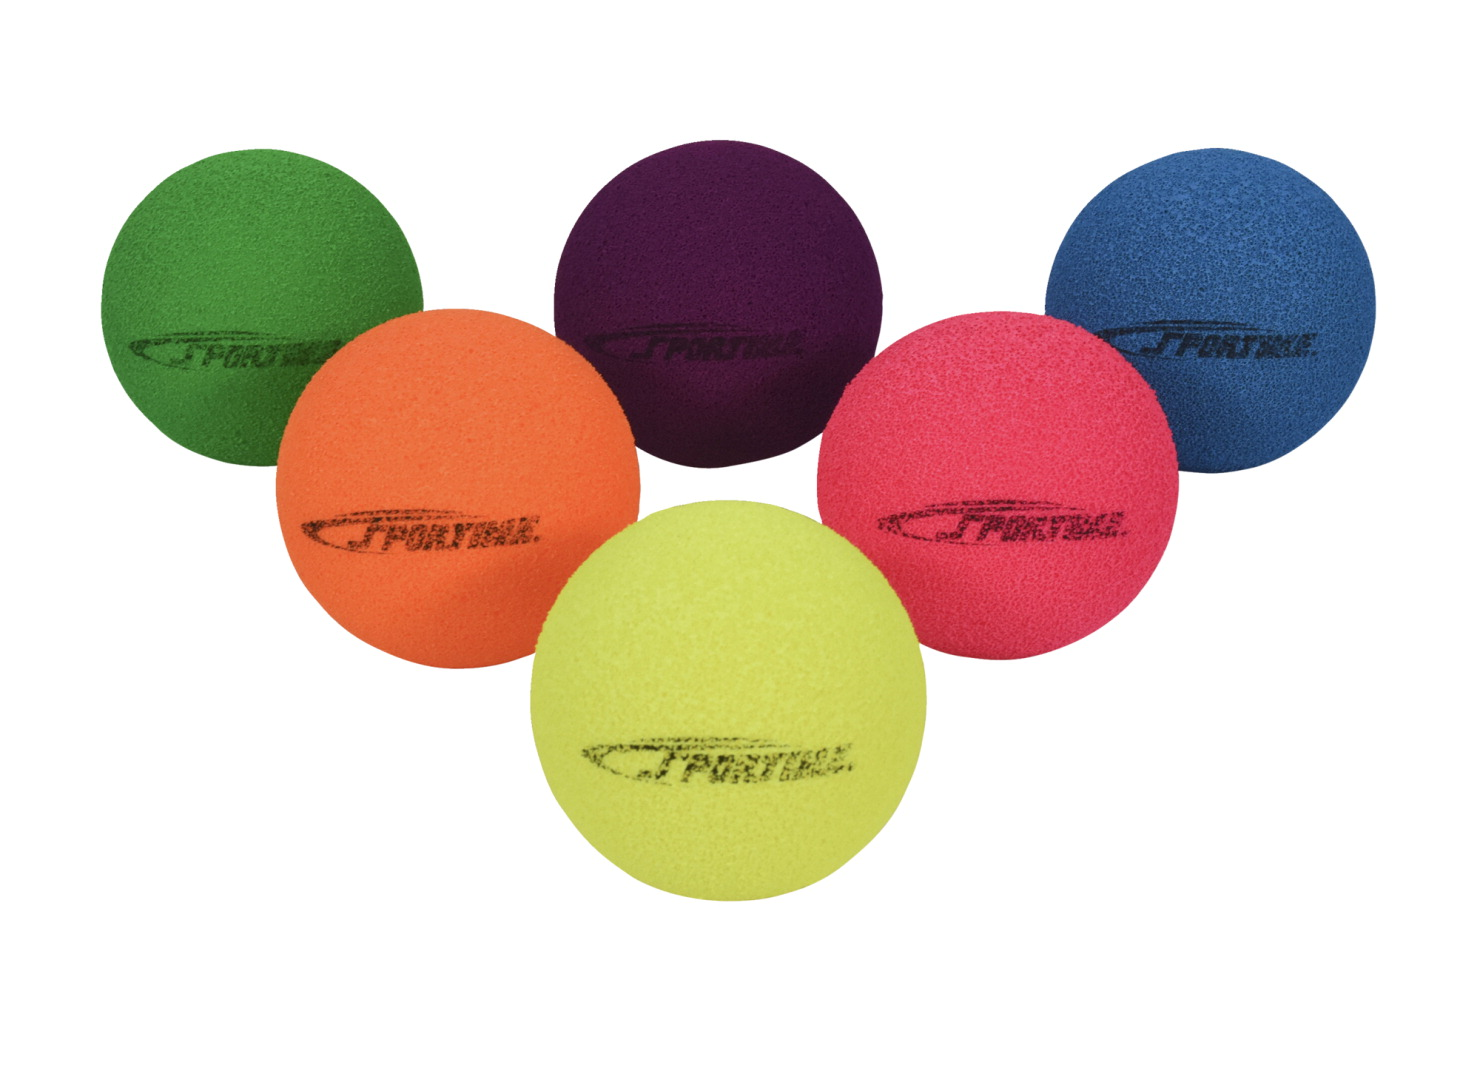 Sportime Fluorescent Foam Balls, Assorted Colors, 3-1/2 Inches, Set of 6